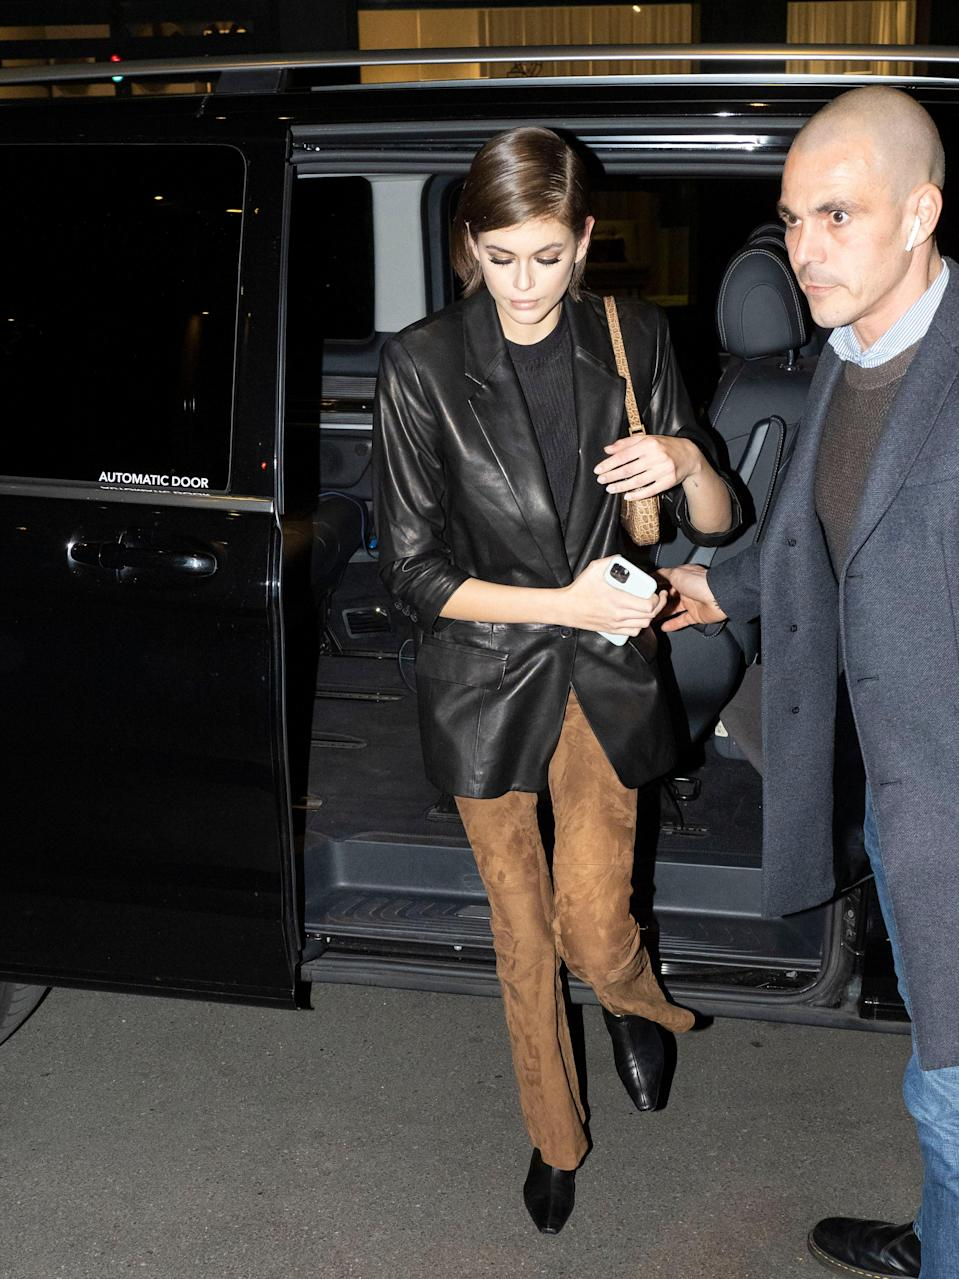 """Aside from the long leather coat, the <a href=""""https://www.teenvogue.com/story/kaia-gerber-leather-blazer?mbid=synd_yahoo_rss"""" rel=""""nofollow noopener"""" target=""""_blank"""" data-ylk=""""slk:leather blazer"""" class=""""link rapid-noclick-resp"""">leather blazer</a> is also a staple in Kaia's wardrobe."""